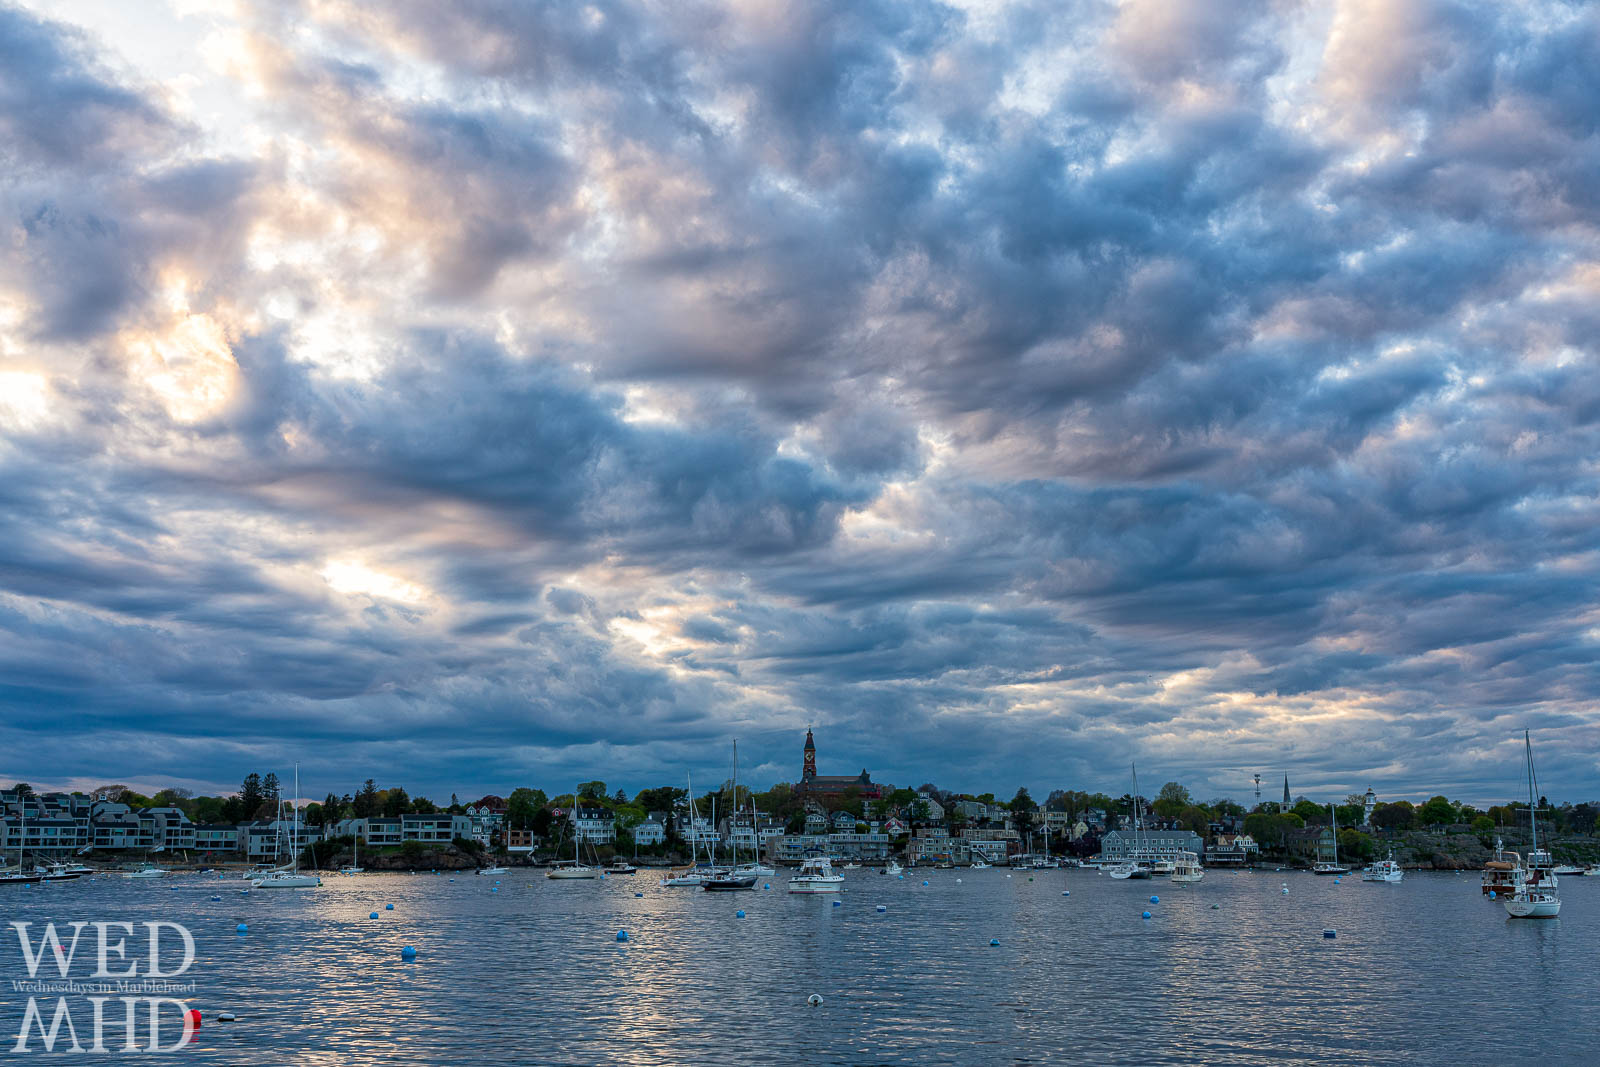 The sky above Marblehead appears to be painted with clouds on a mid-May evening with several boats already on their moorings